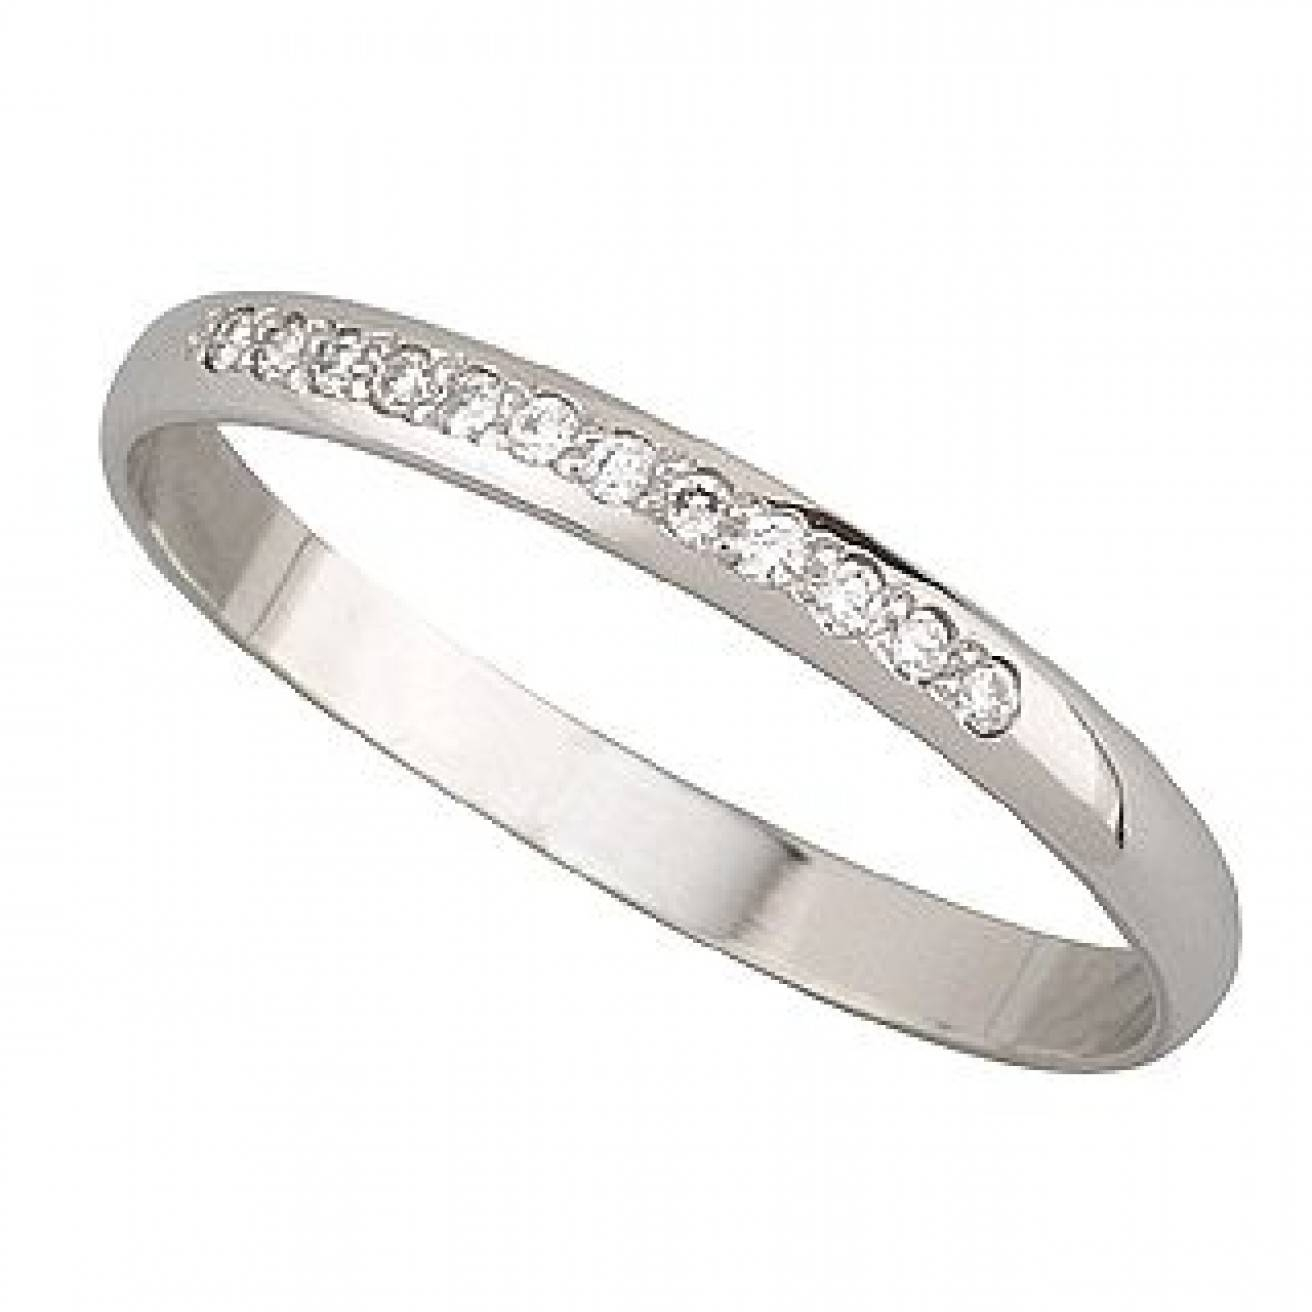 Wedding Rings : Platinum Women's Wedding Band Baguette Wedding Within Most Current Platinum And Diamond Wedding Bands (View 15 of 15)